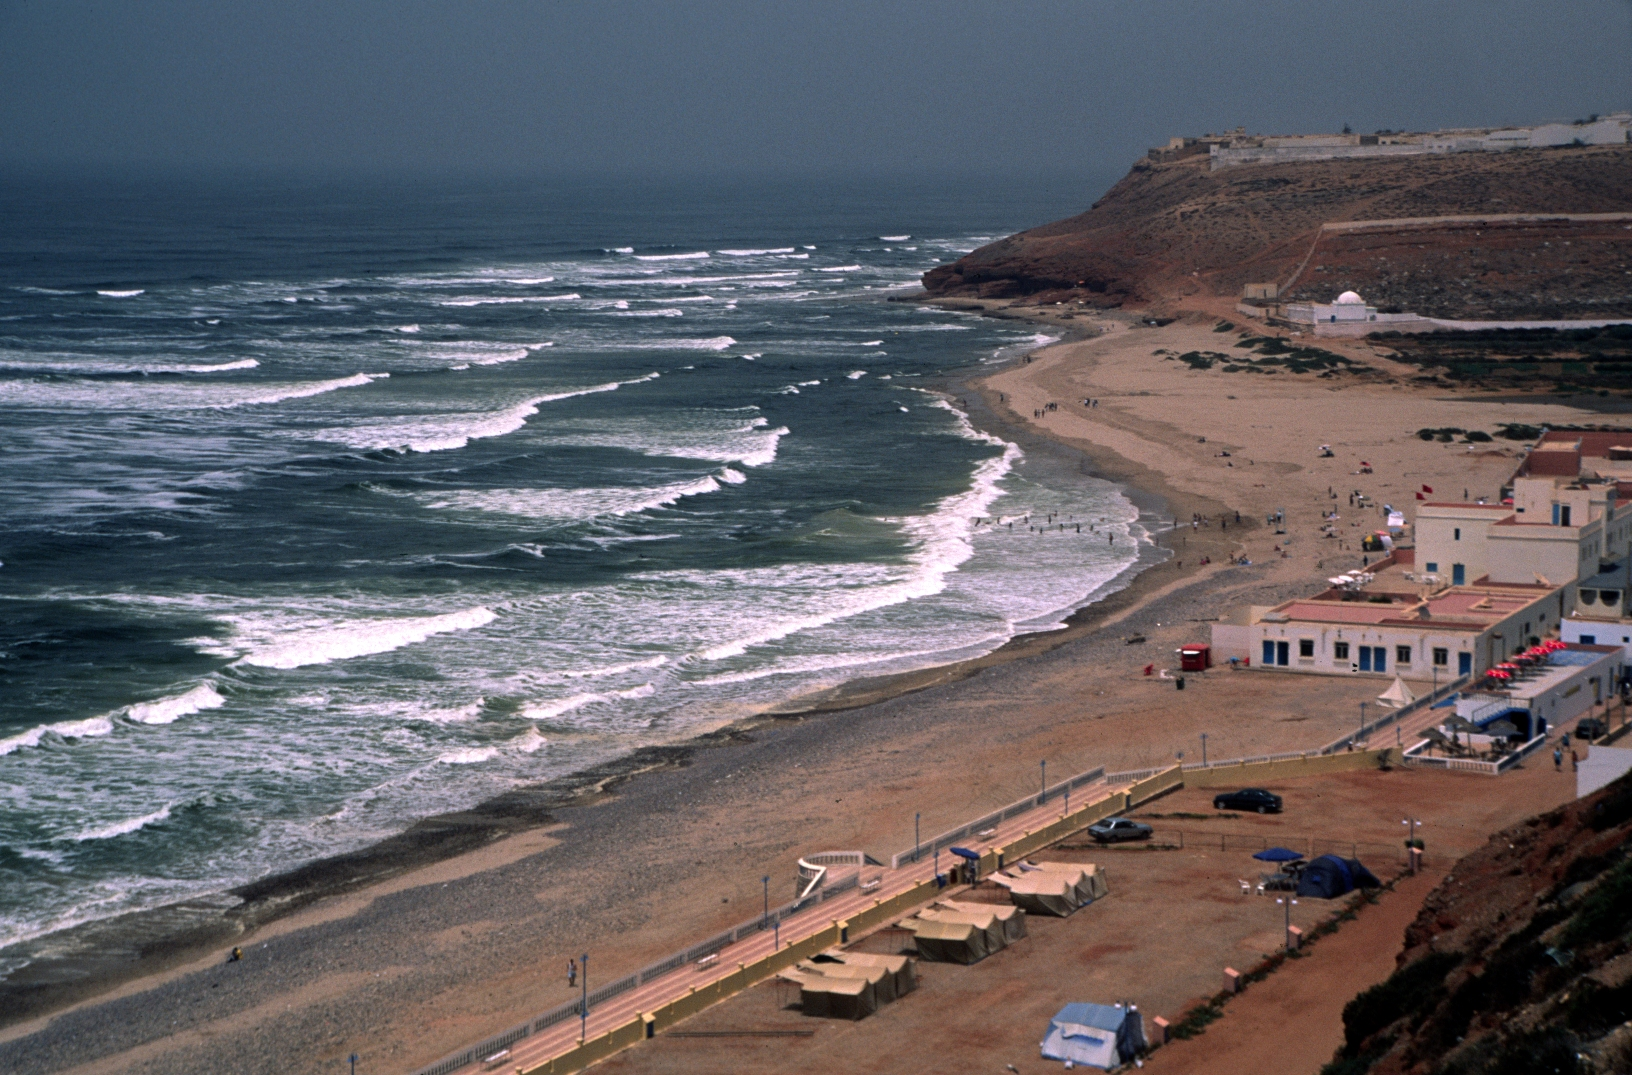 The northern end of the beach in Sidi Ifni